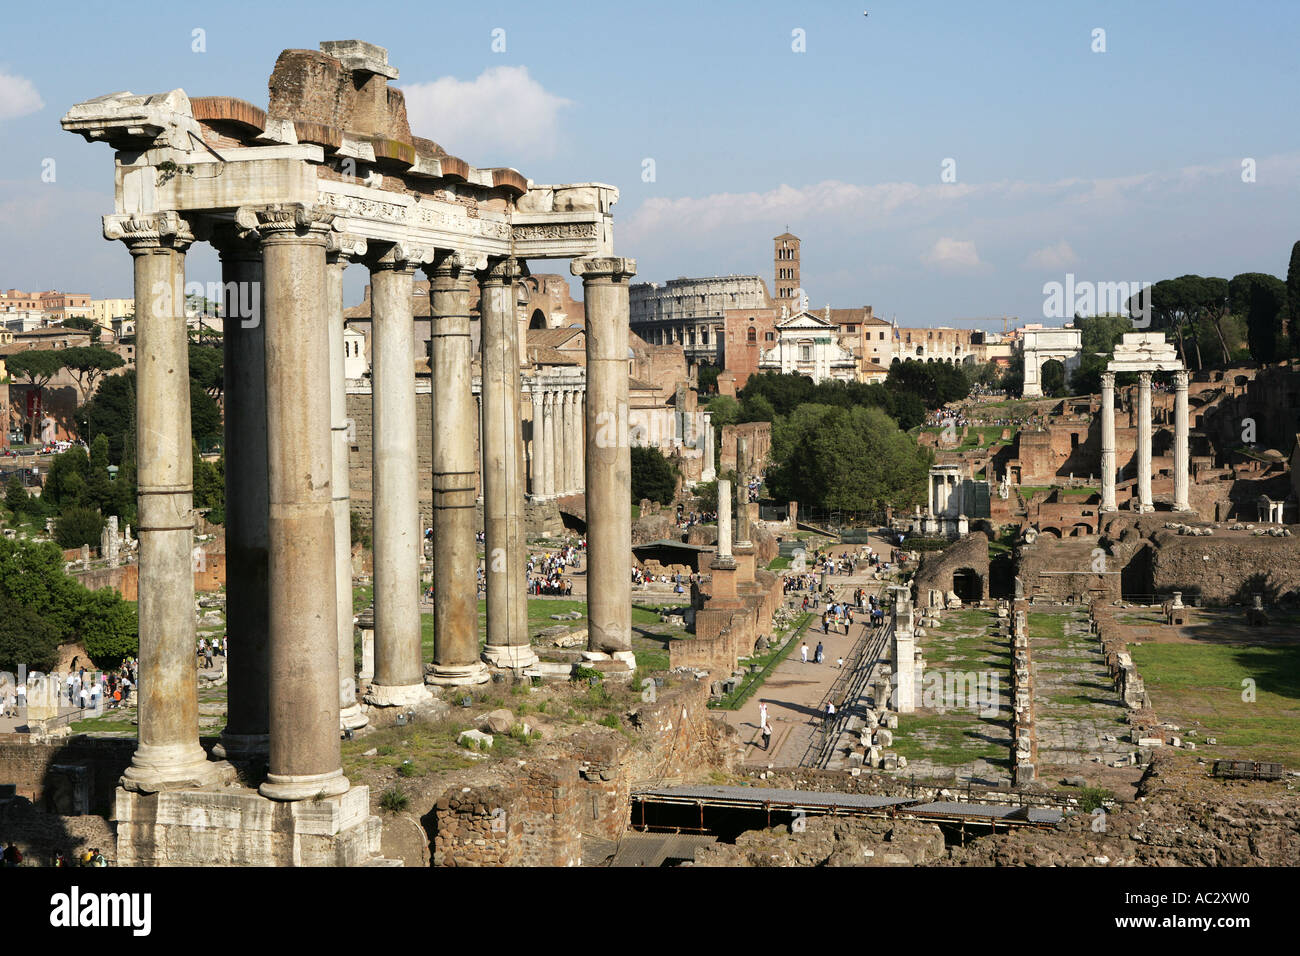 ITA, Italy, Rome : centre of the ancient Rome, buildings and ruins of the Foro Romano - Stock Image